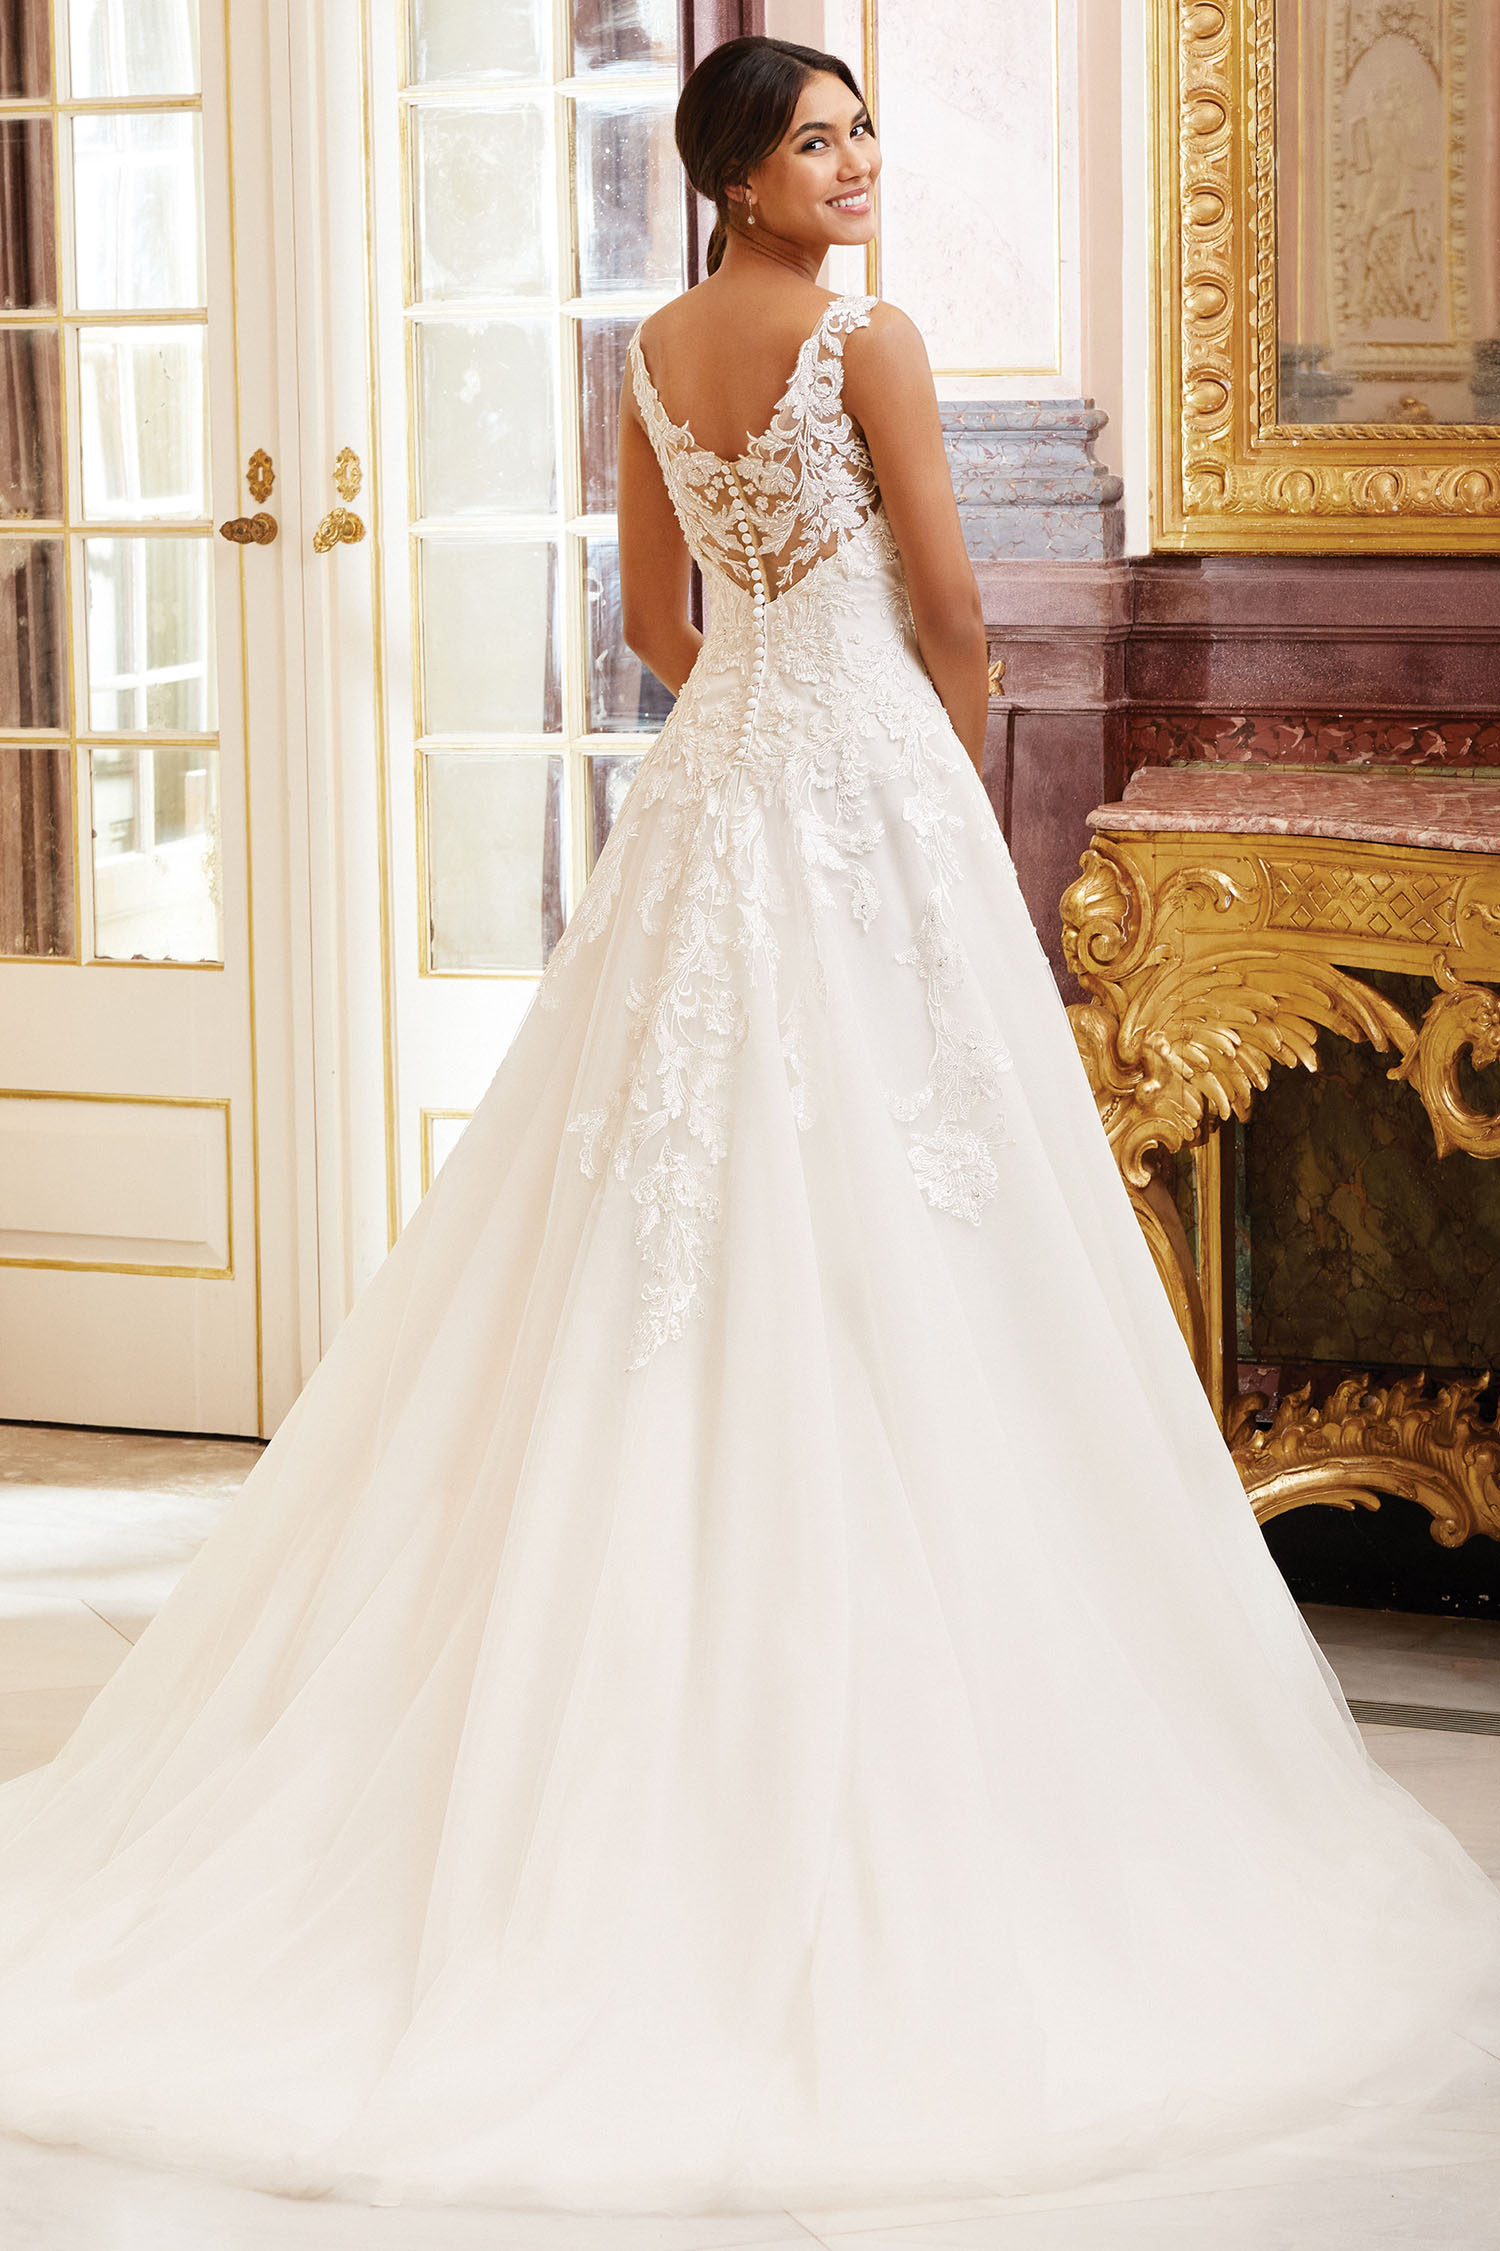 Bride wearing a princess style own with high llusion back.